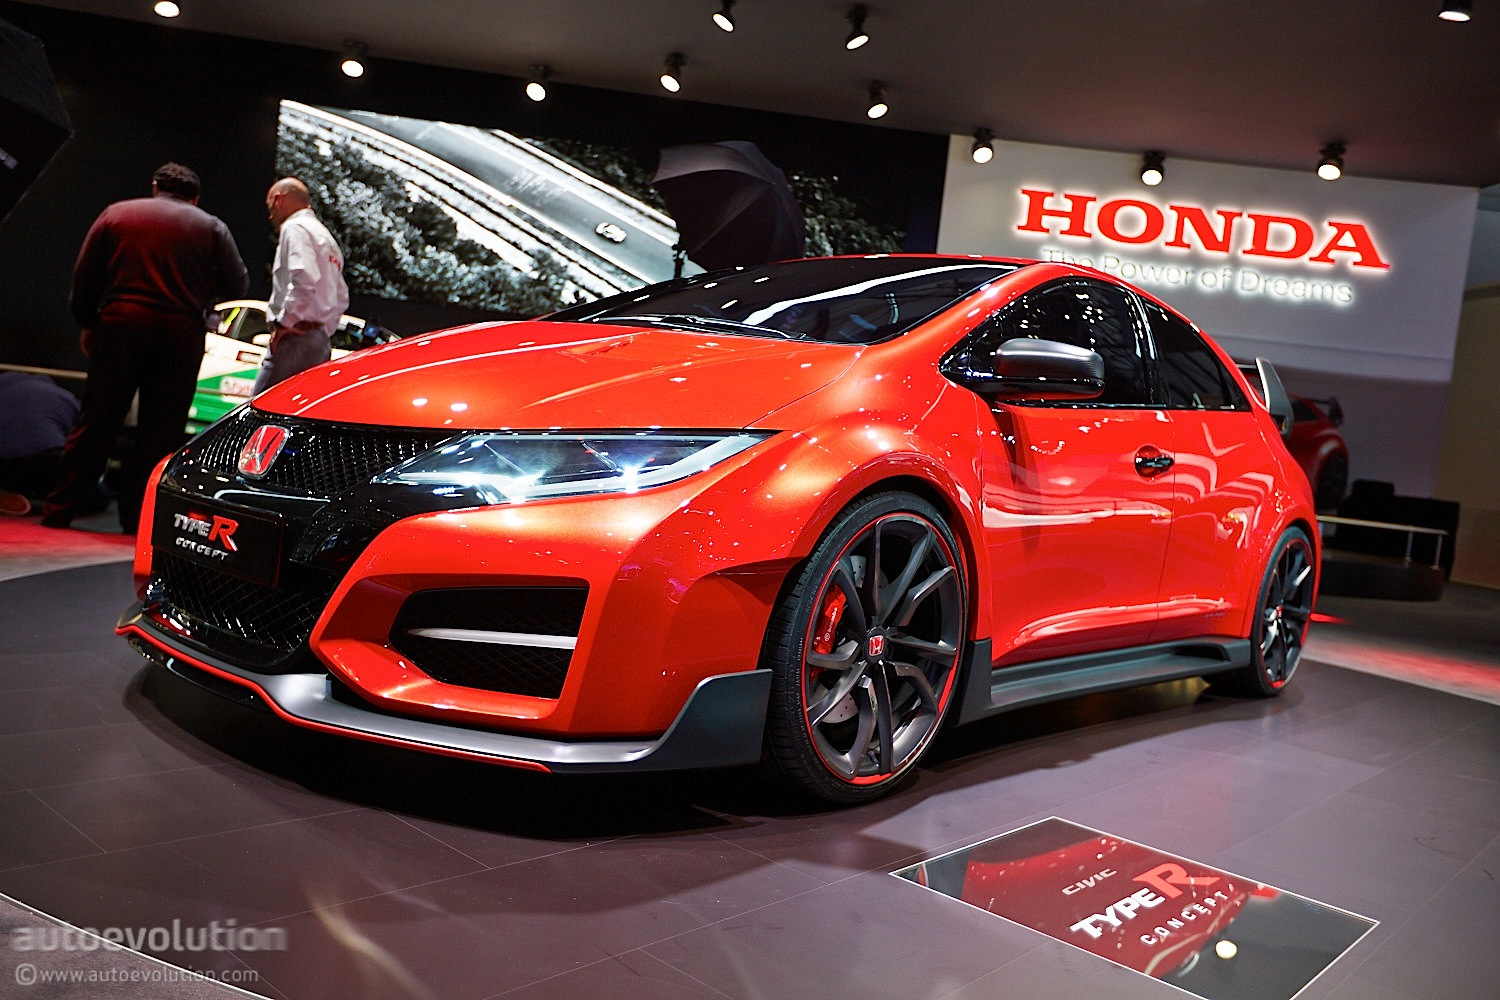 honda summons devilish new civic type r for the road track video live photos autoevolution. Black Bedroom Furniture Sets. Home Design Ideas